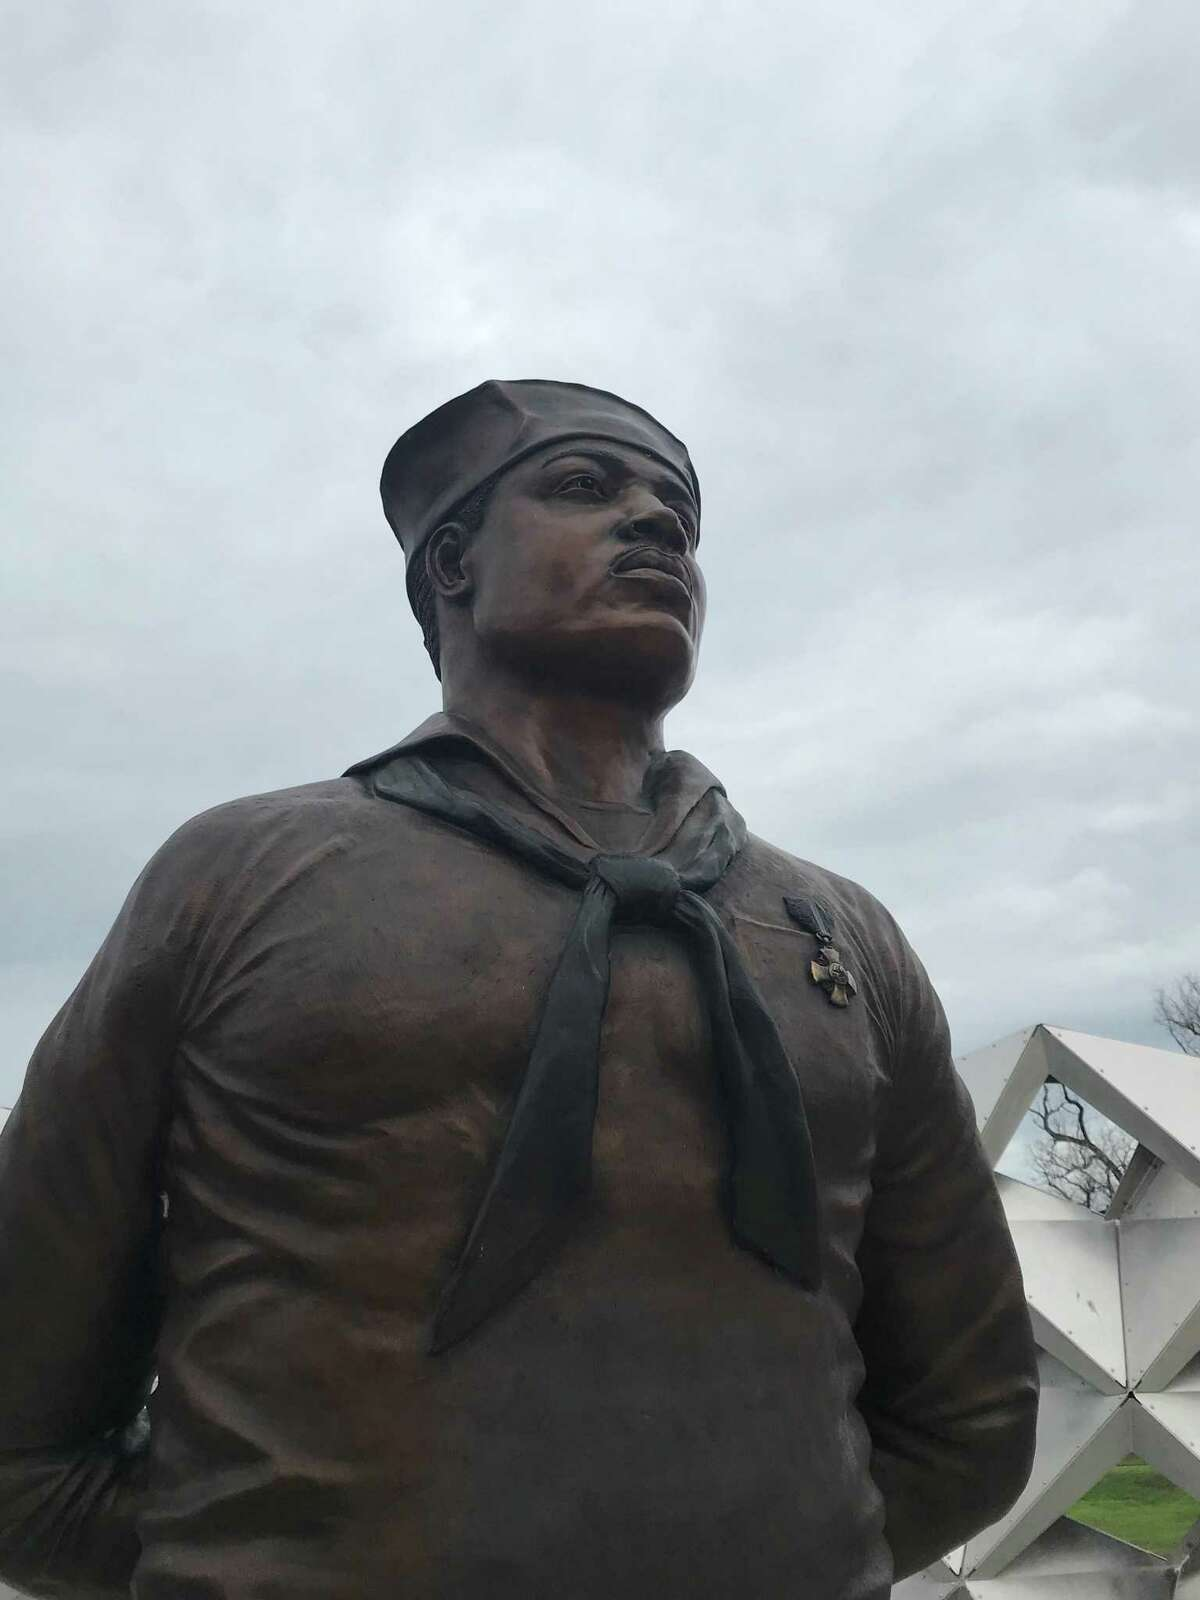 The non-profit Cultural Arts of Waco is working to raise the final $23,000 to complete the Doris Miller Memorial for a Memorial Day weekend celebration.